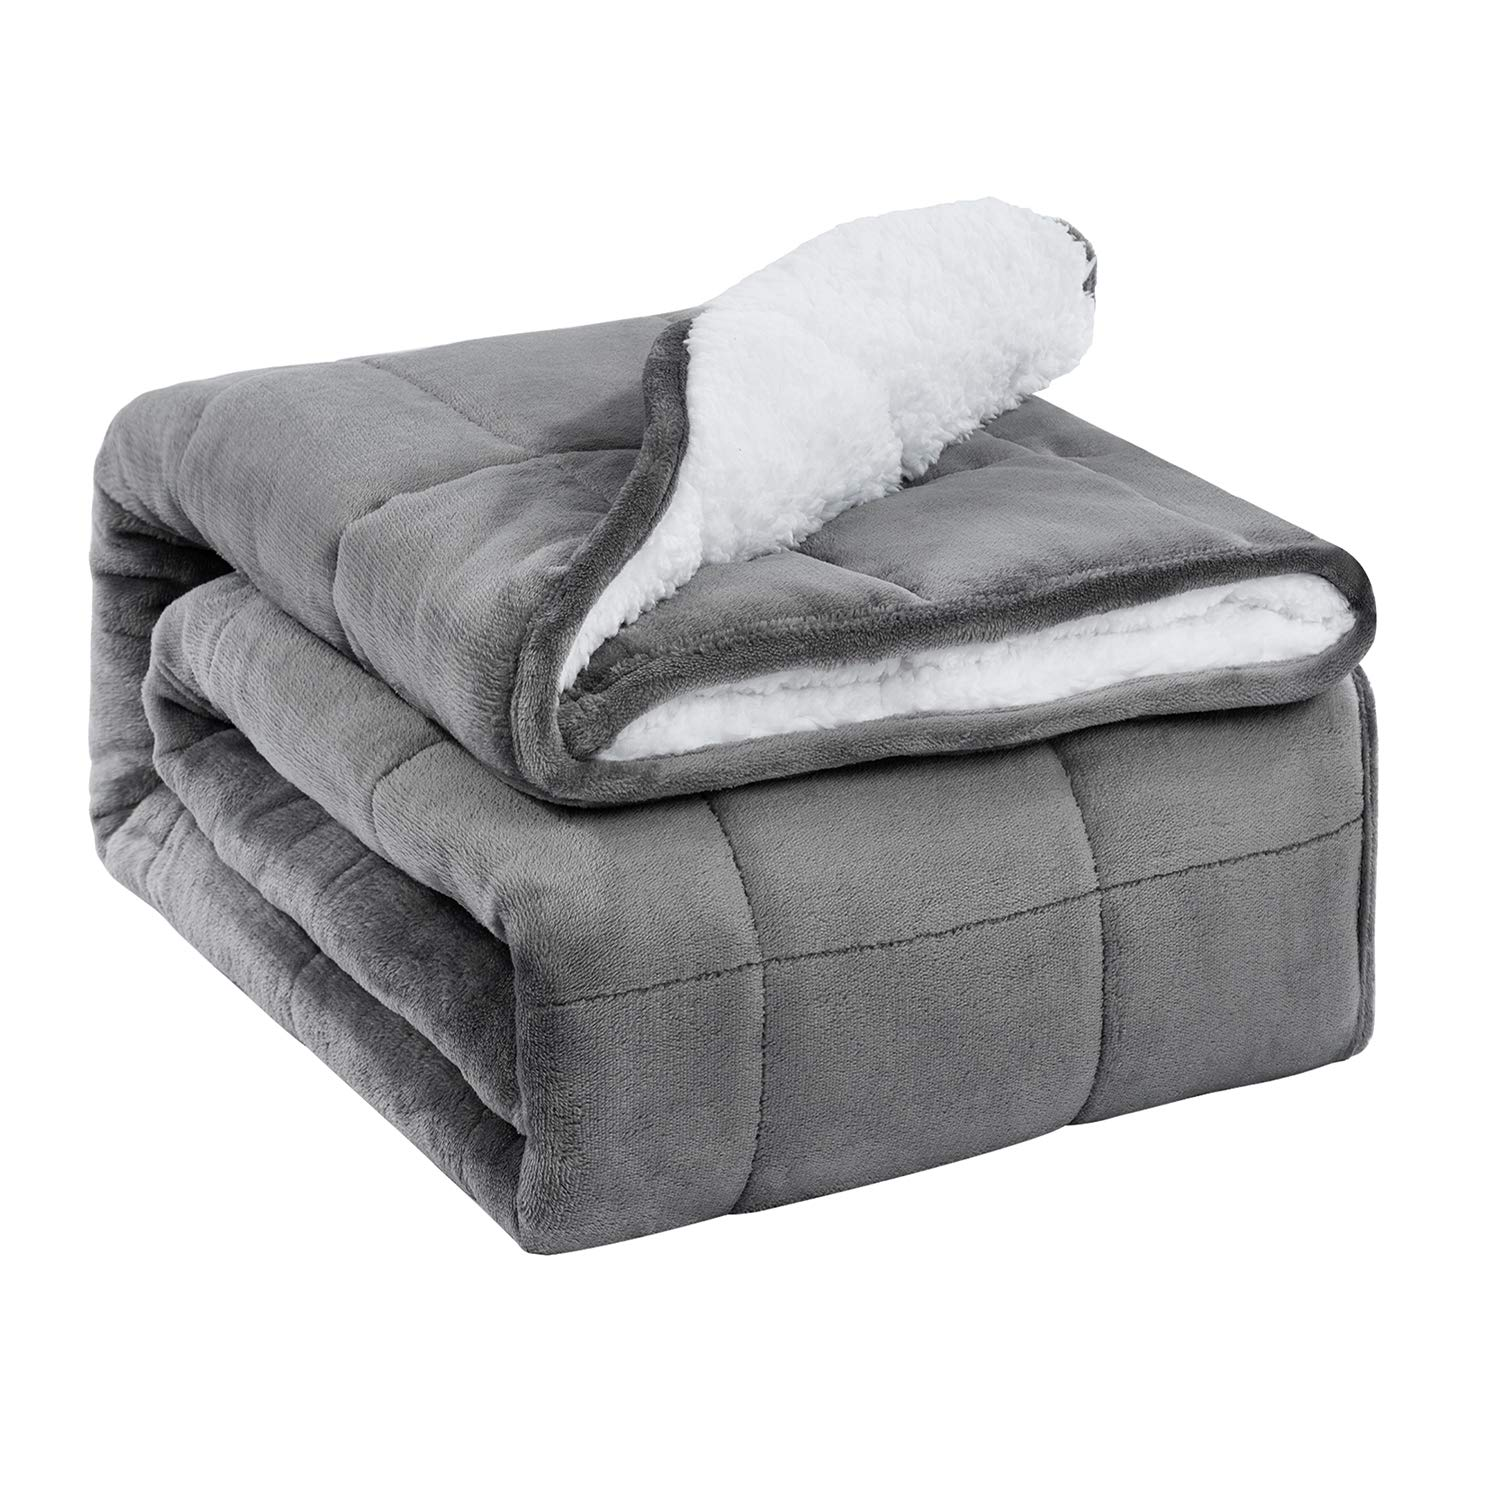 BUZIO Sherpa Fleece Weighted Blanket for Adult, 15 lbs Thick Fuzzy Bed Blanket with Soft Plush Flannel, Dual Sided Cozy Fluffy Blanket, 60 x 80 inches, Grey